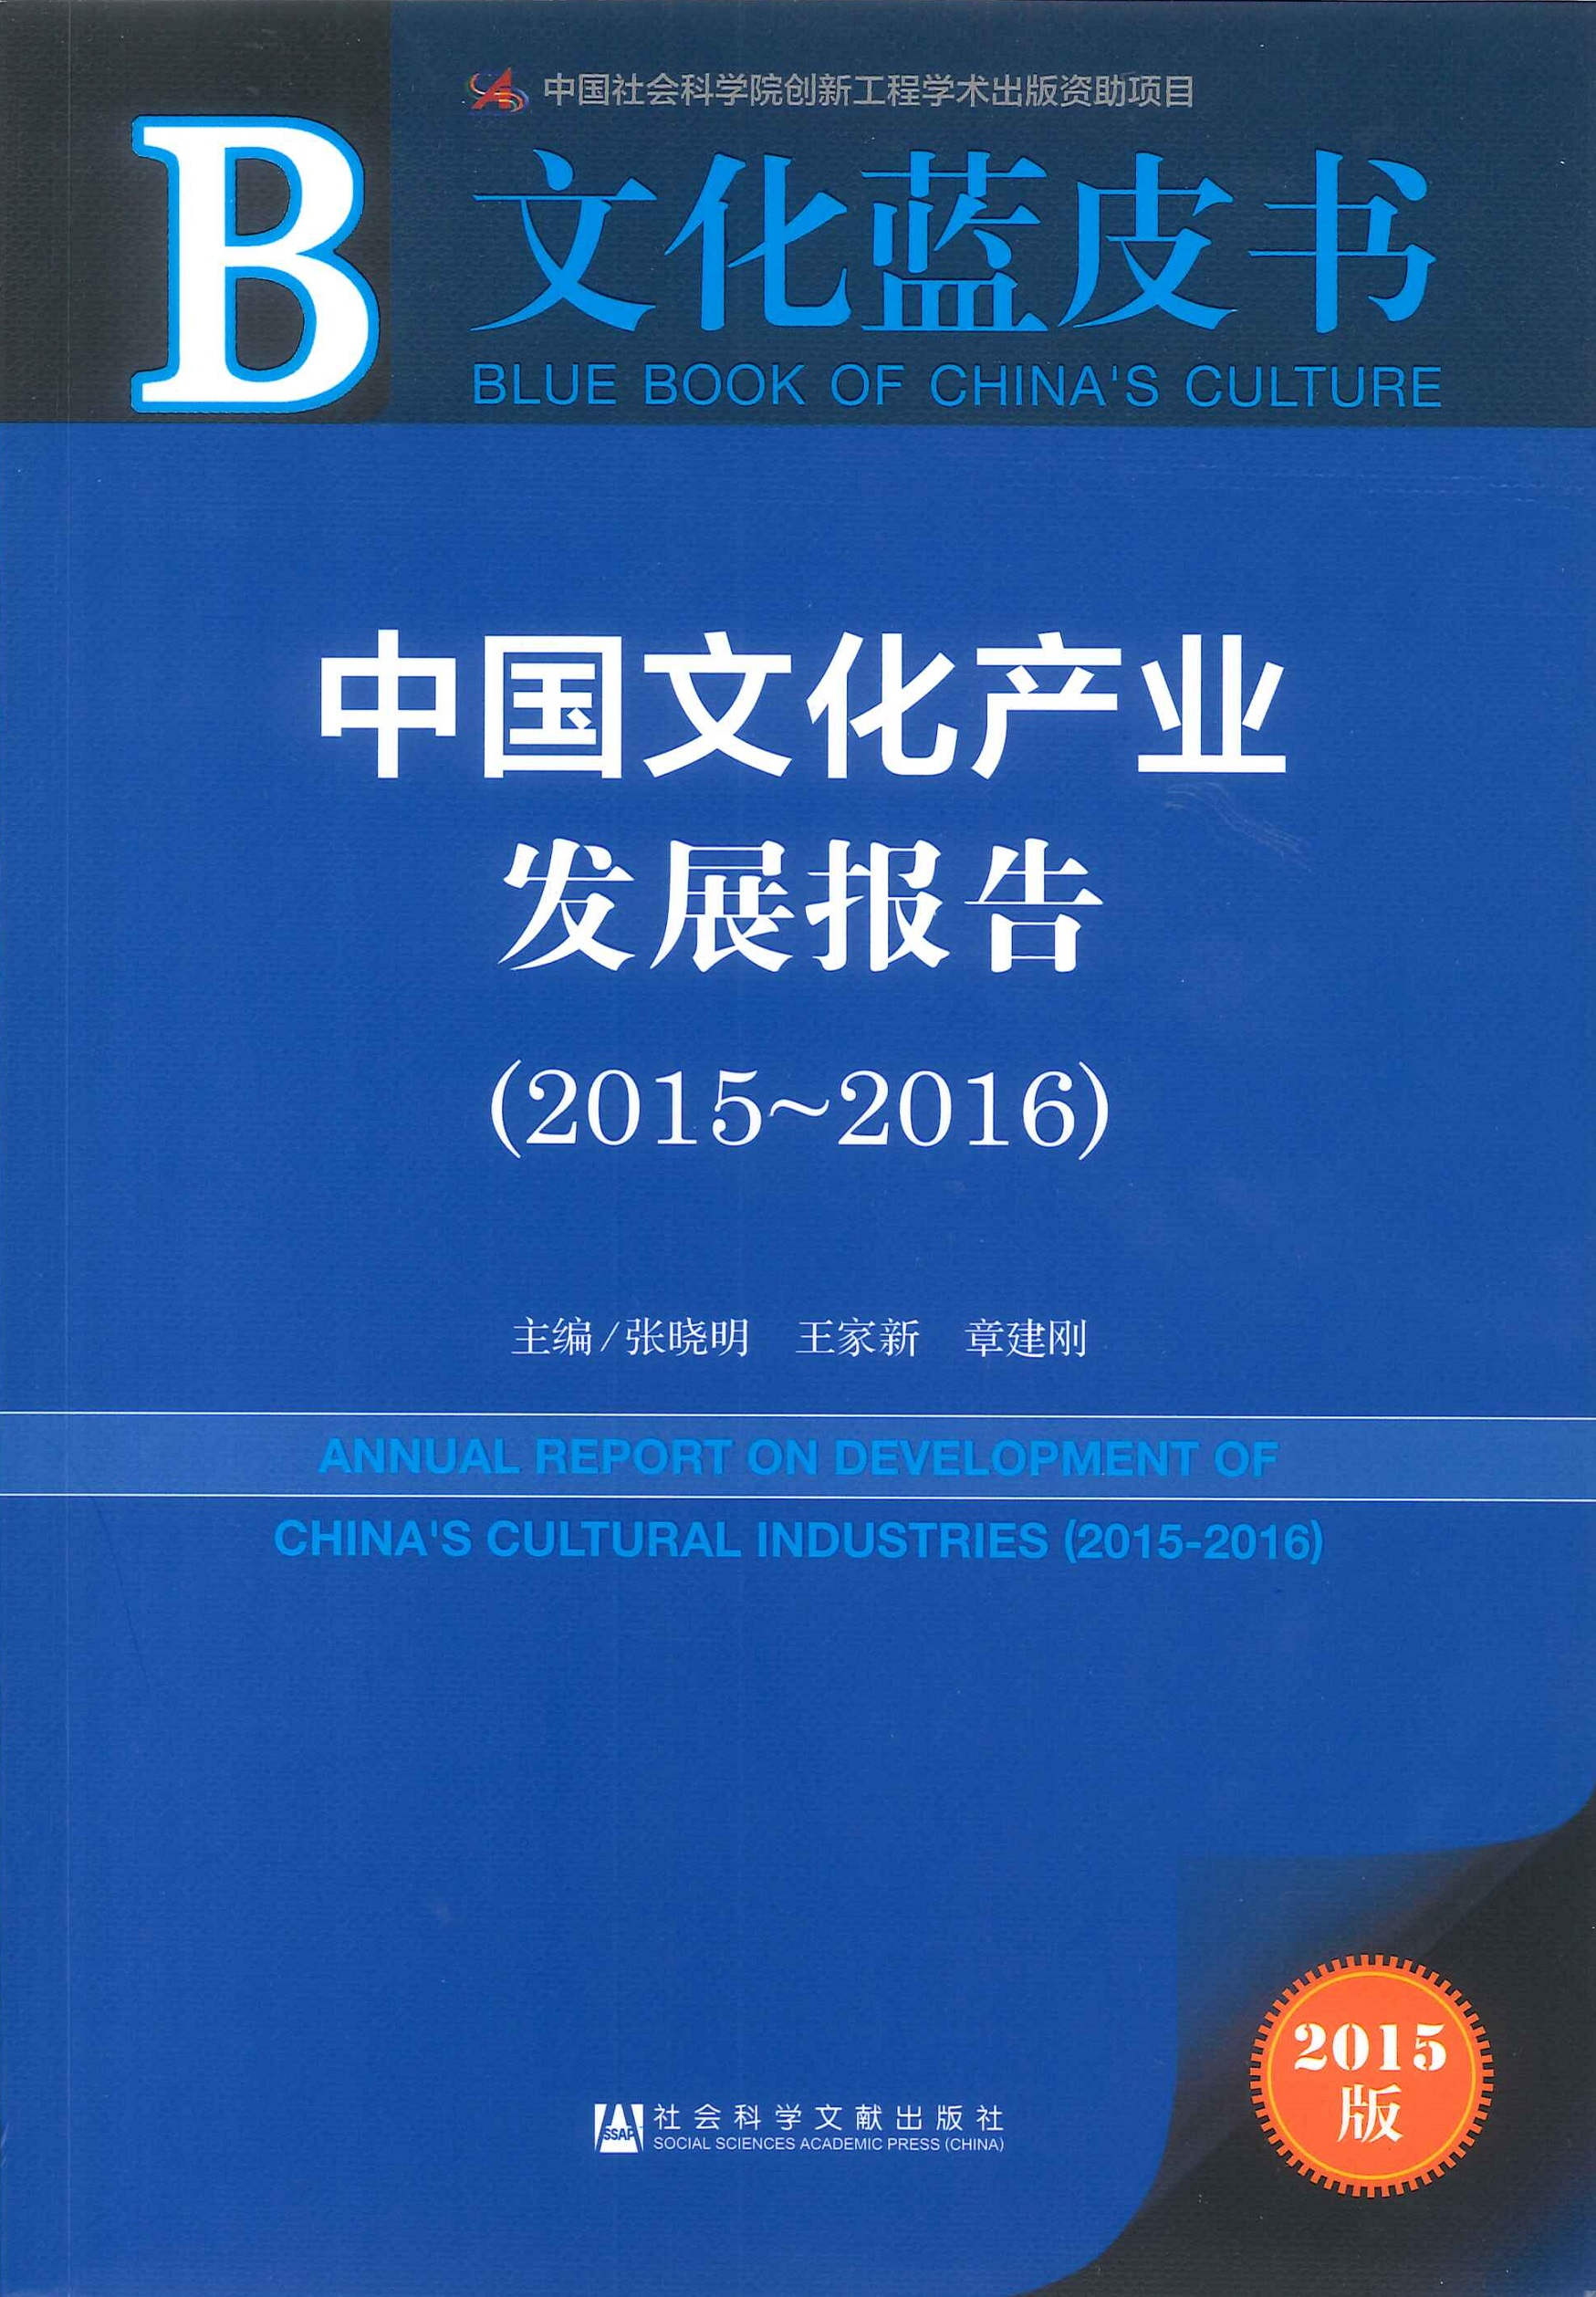 中国文化产业发展报告=Annual report on development of China